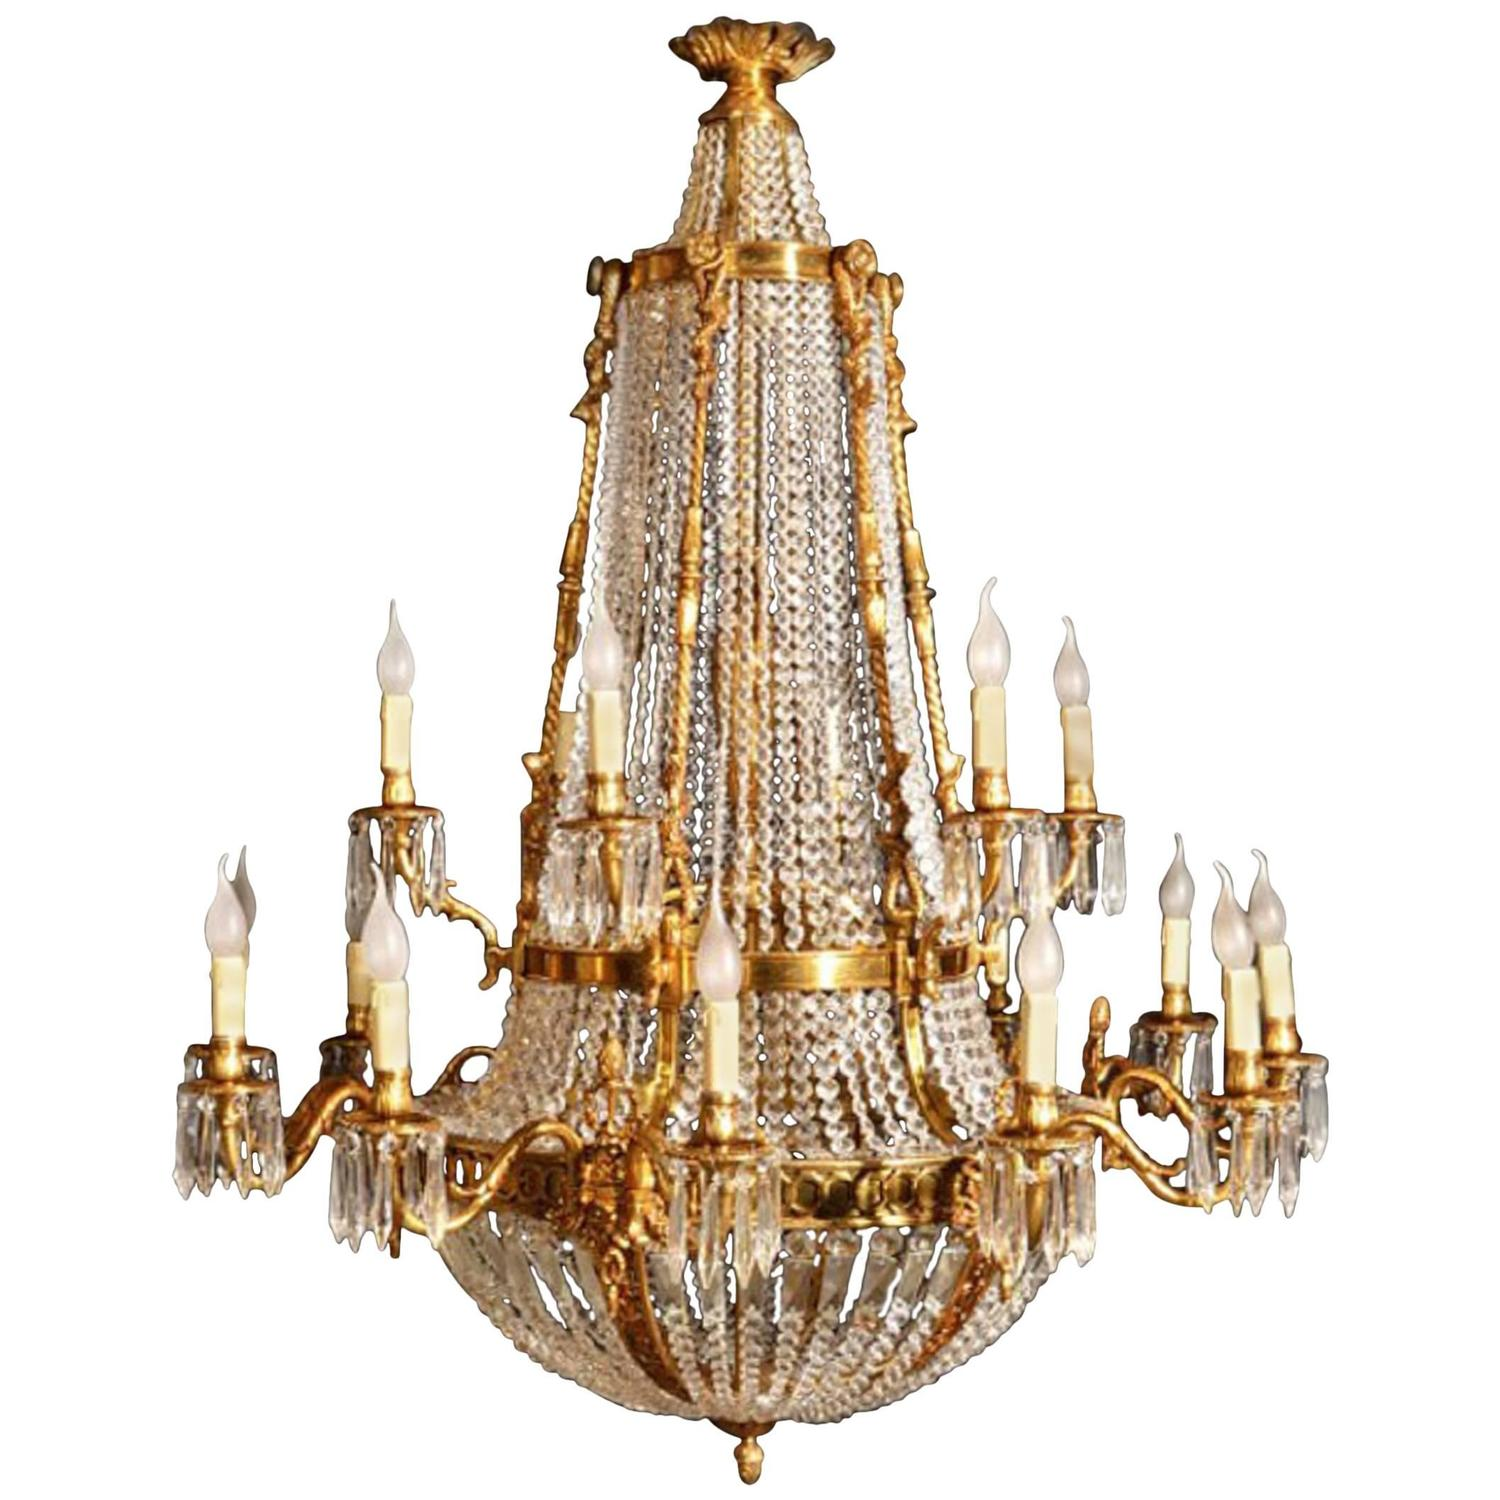 French Empire Two Tier Eighteen Light Ballroom Chandelier at 1stdibs